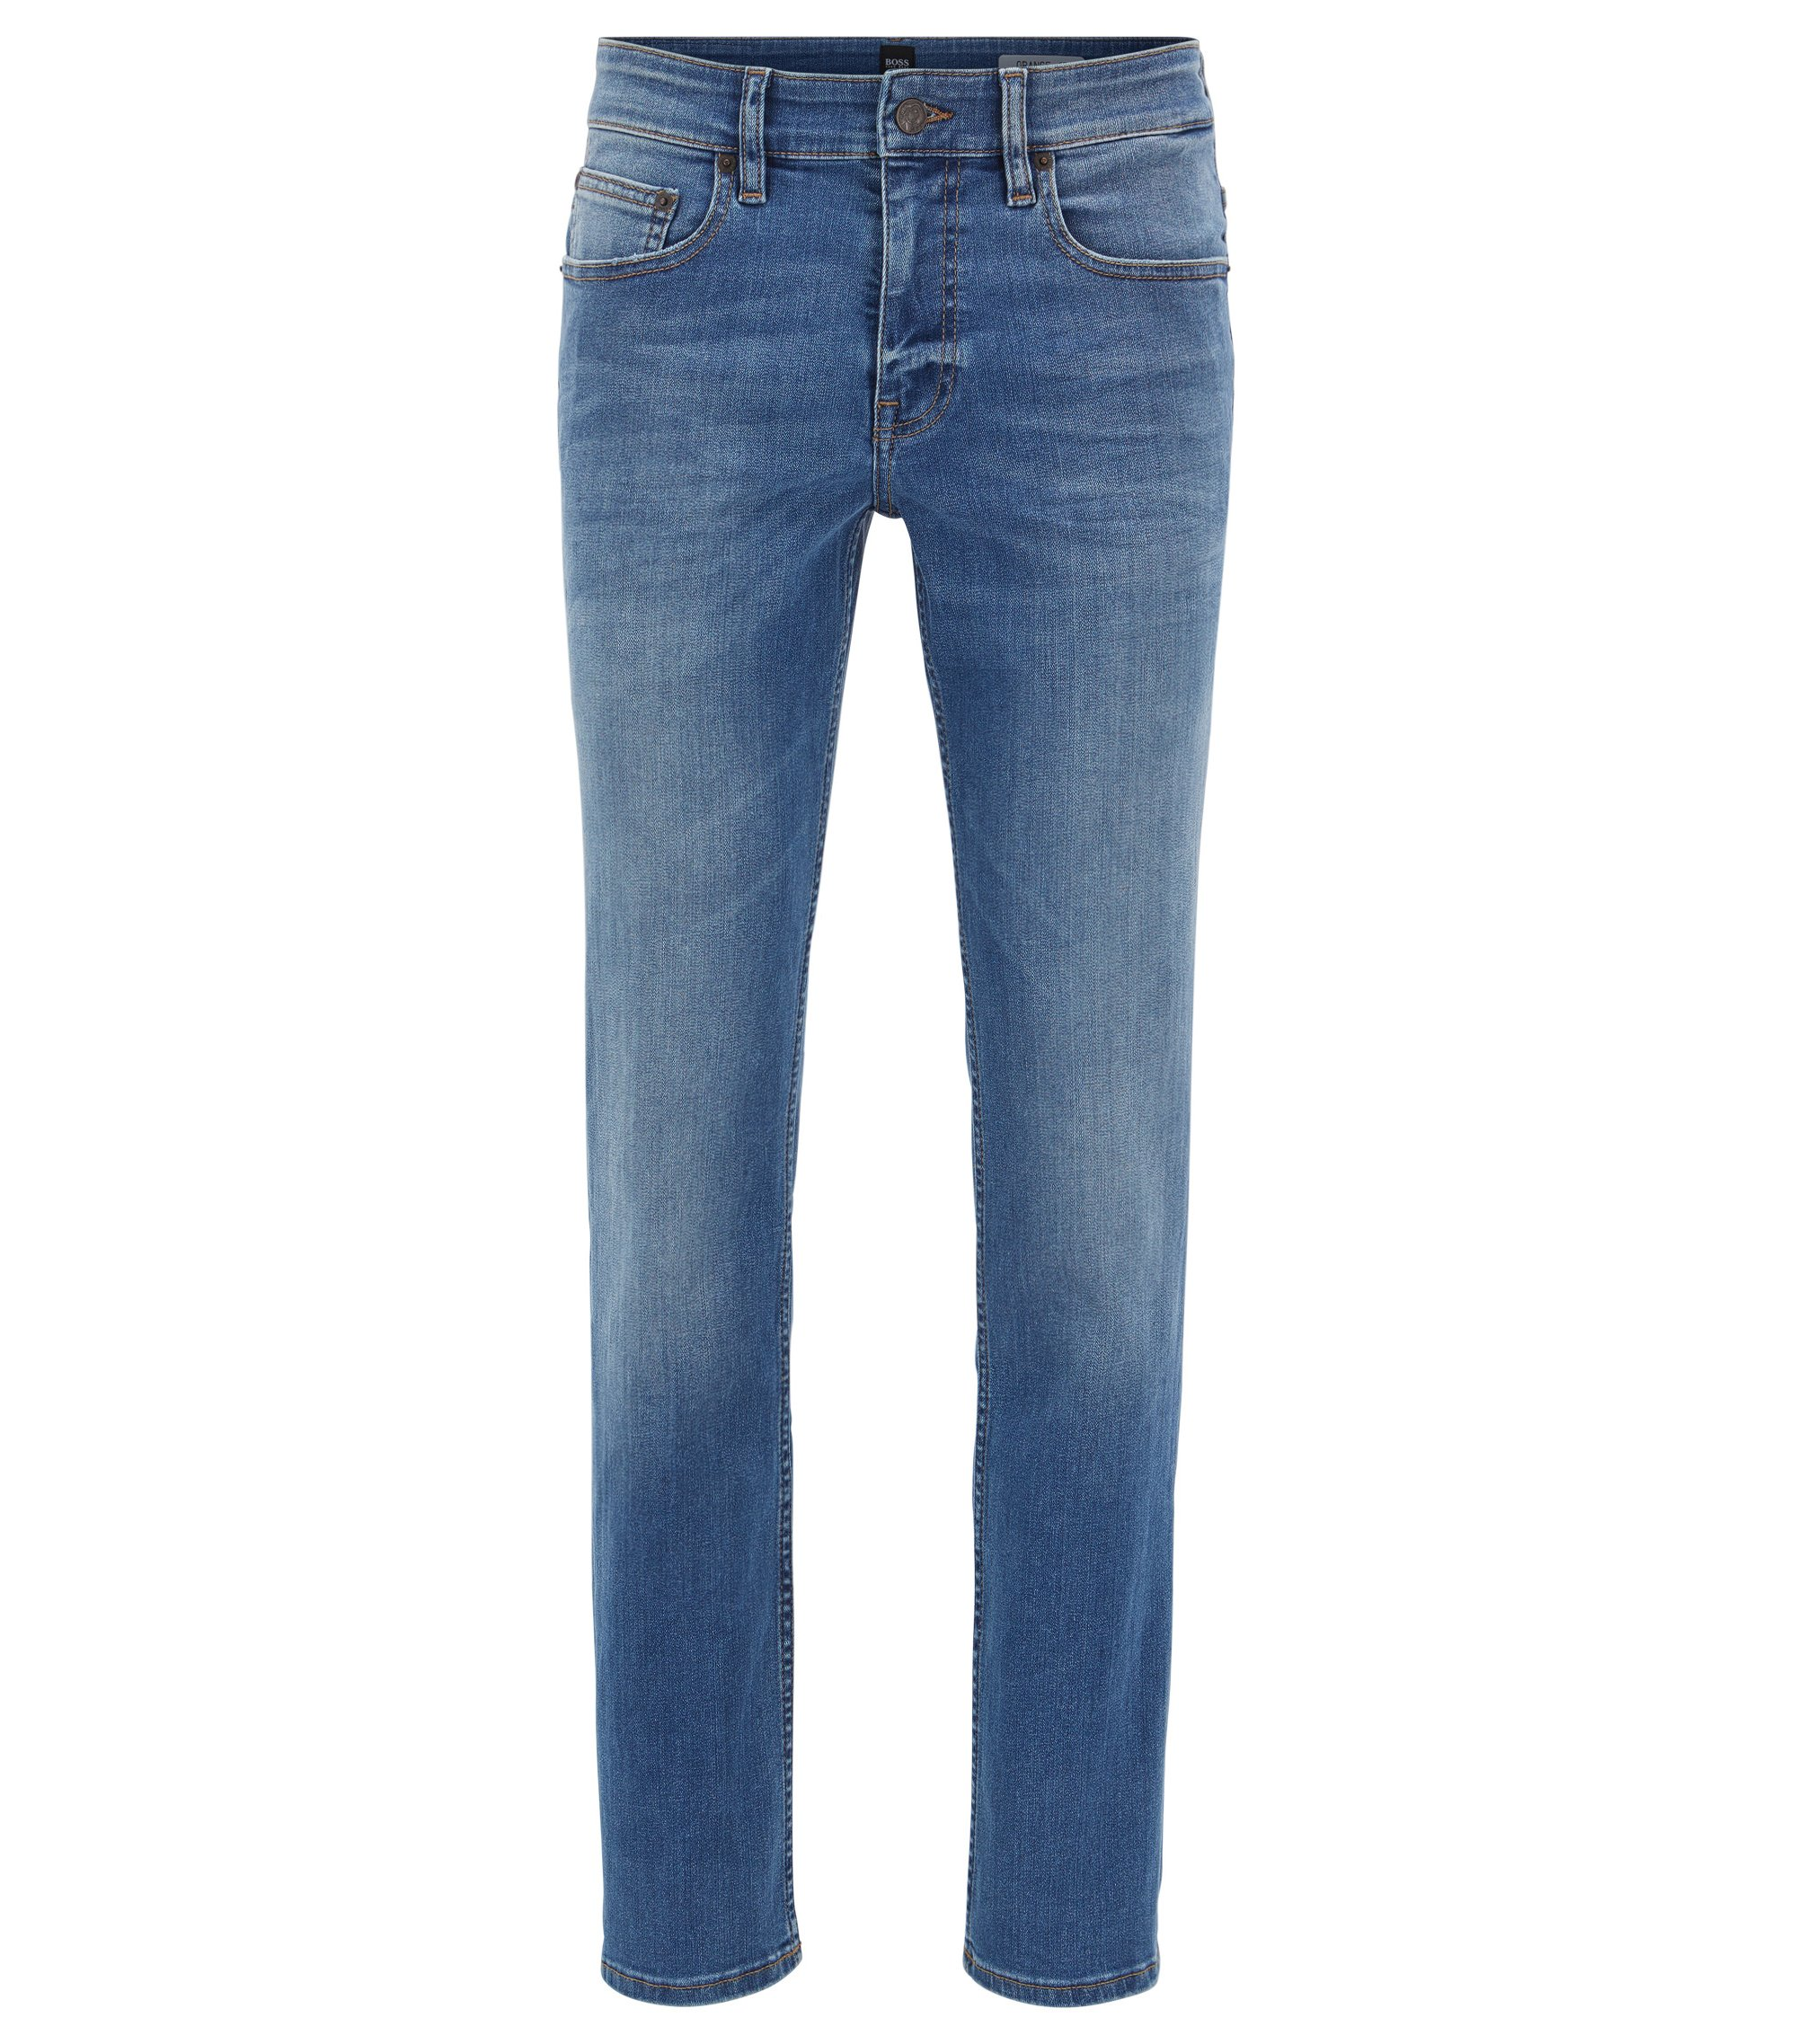 Jeans Slim Fit bleu moyen en denim super stretch, Bleu